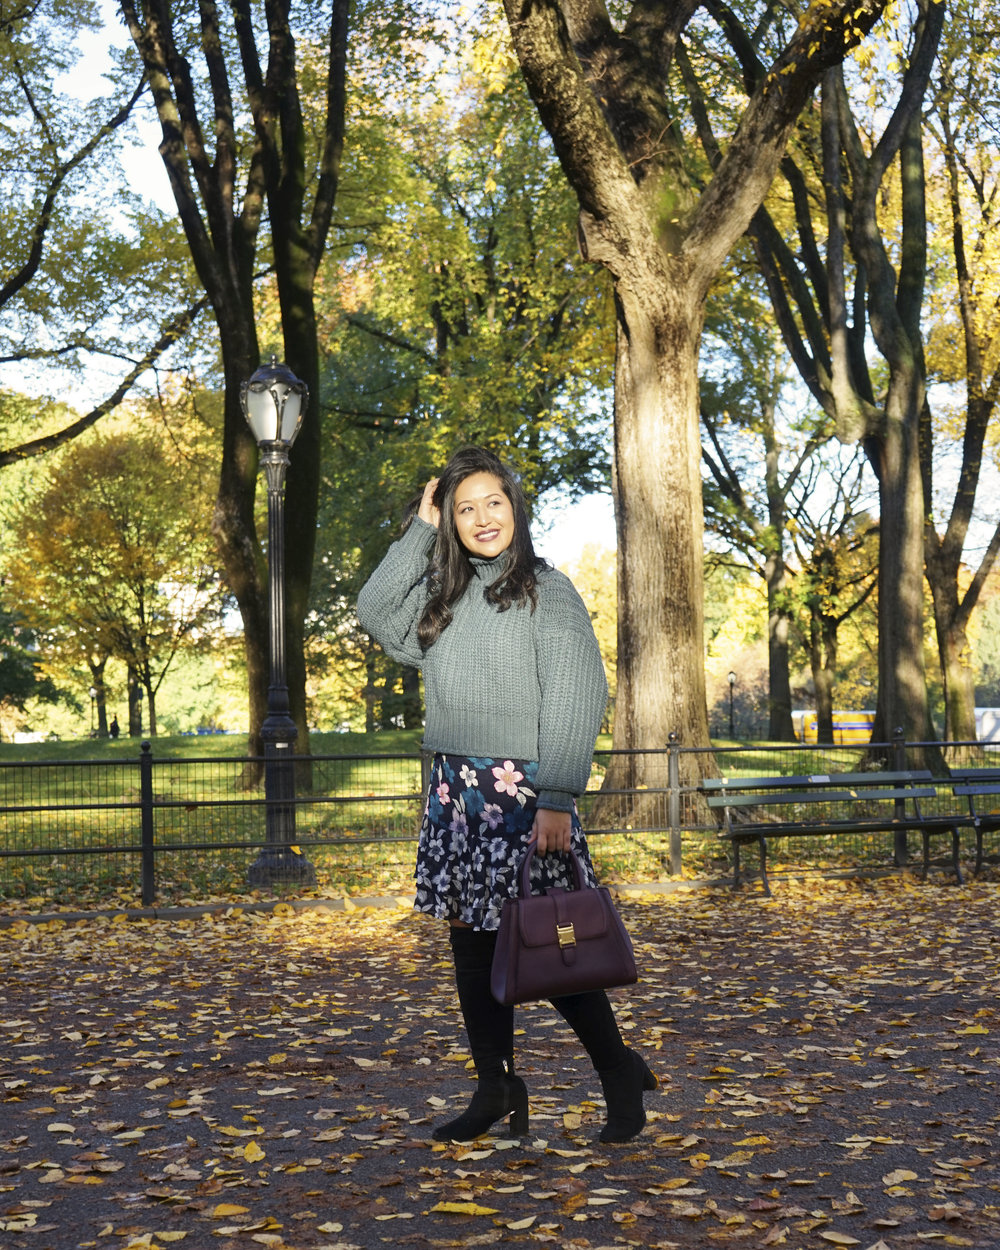 Krity S x Fall Outfit x Thanksgiving Look3.jpg